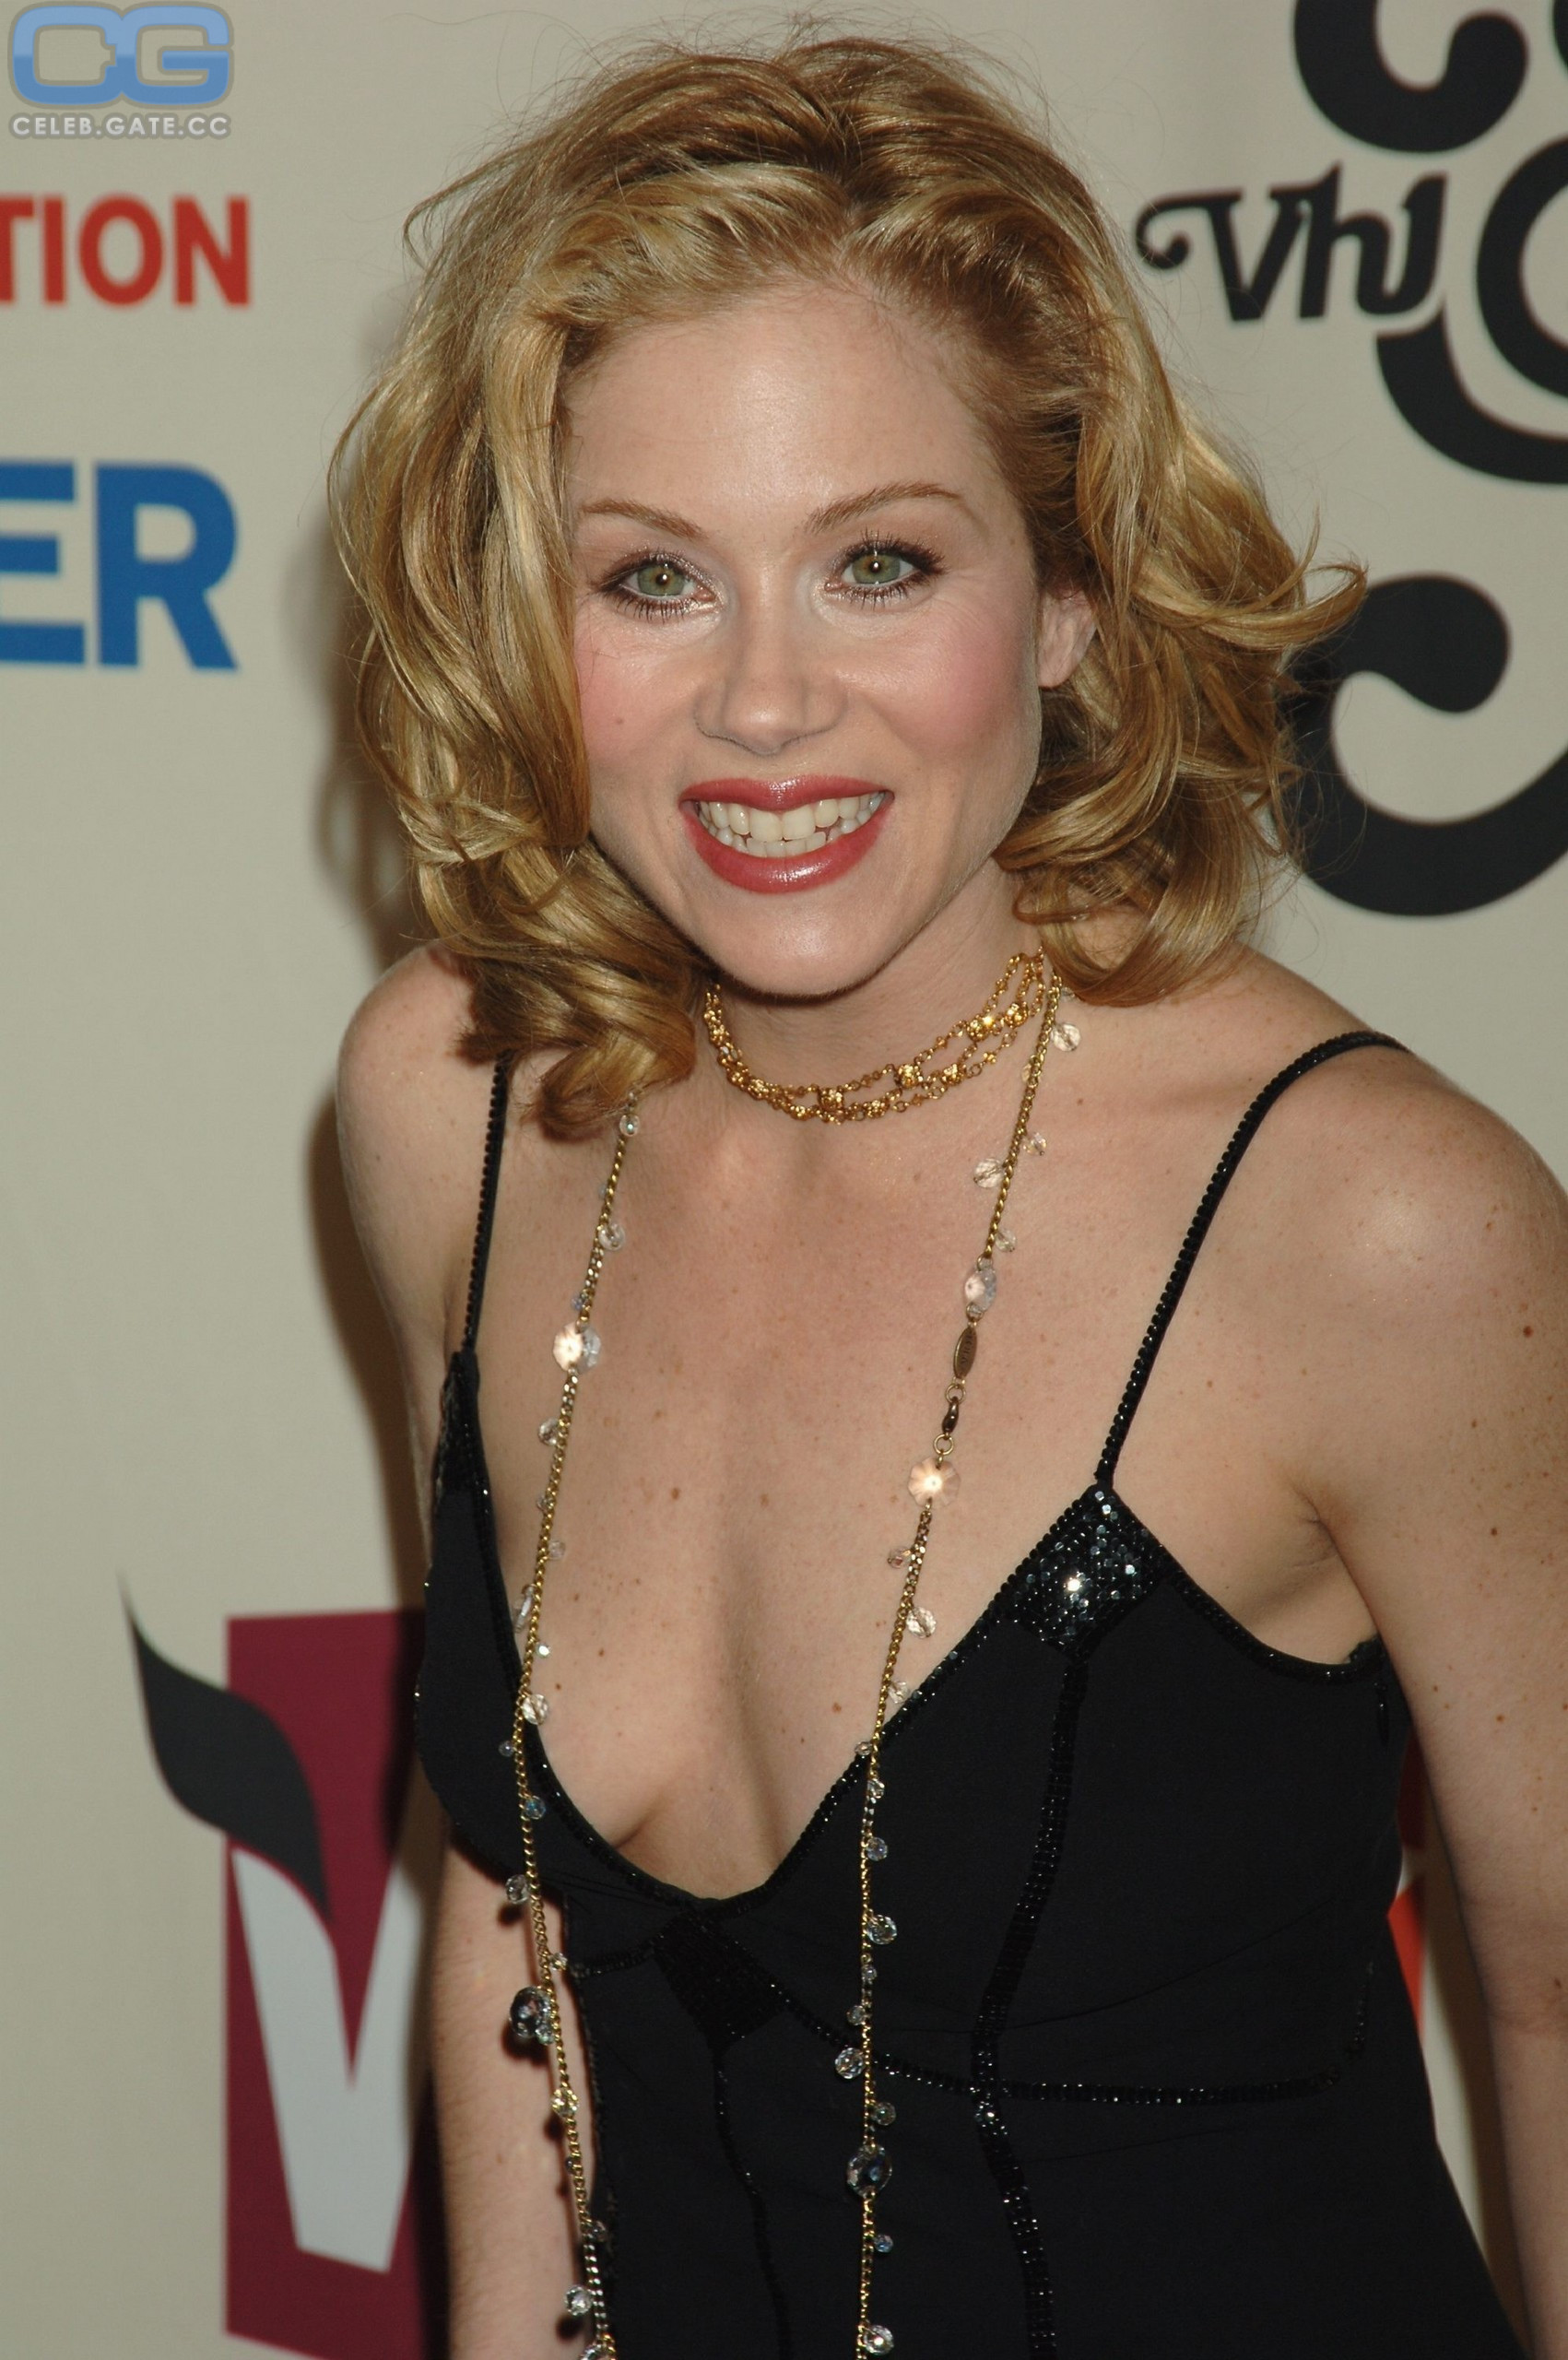 Christina Applegate nude, pictures, photos, Playboy, naked ...